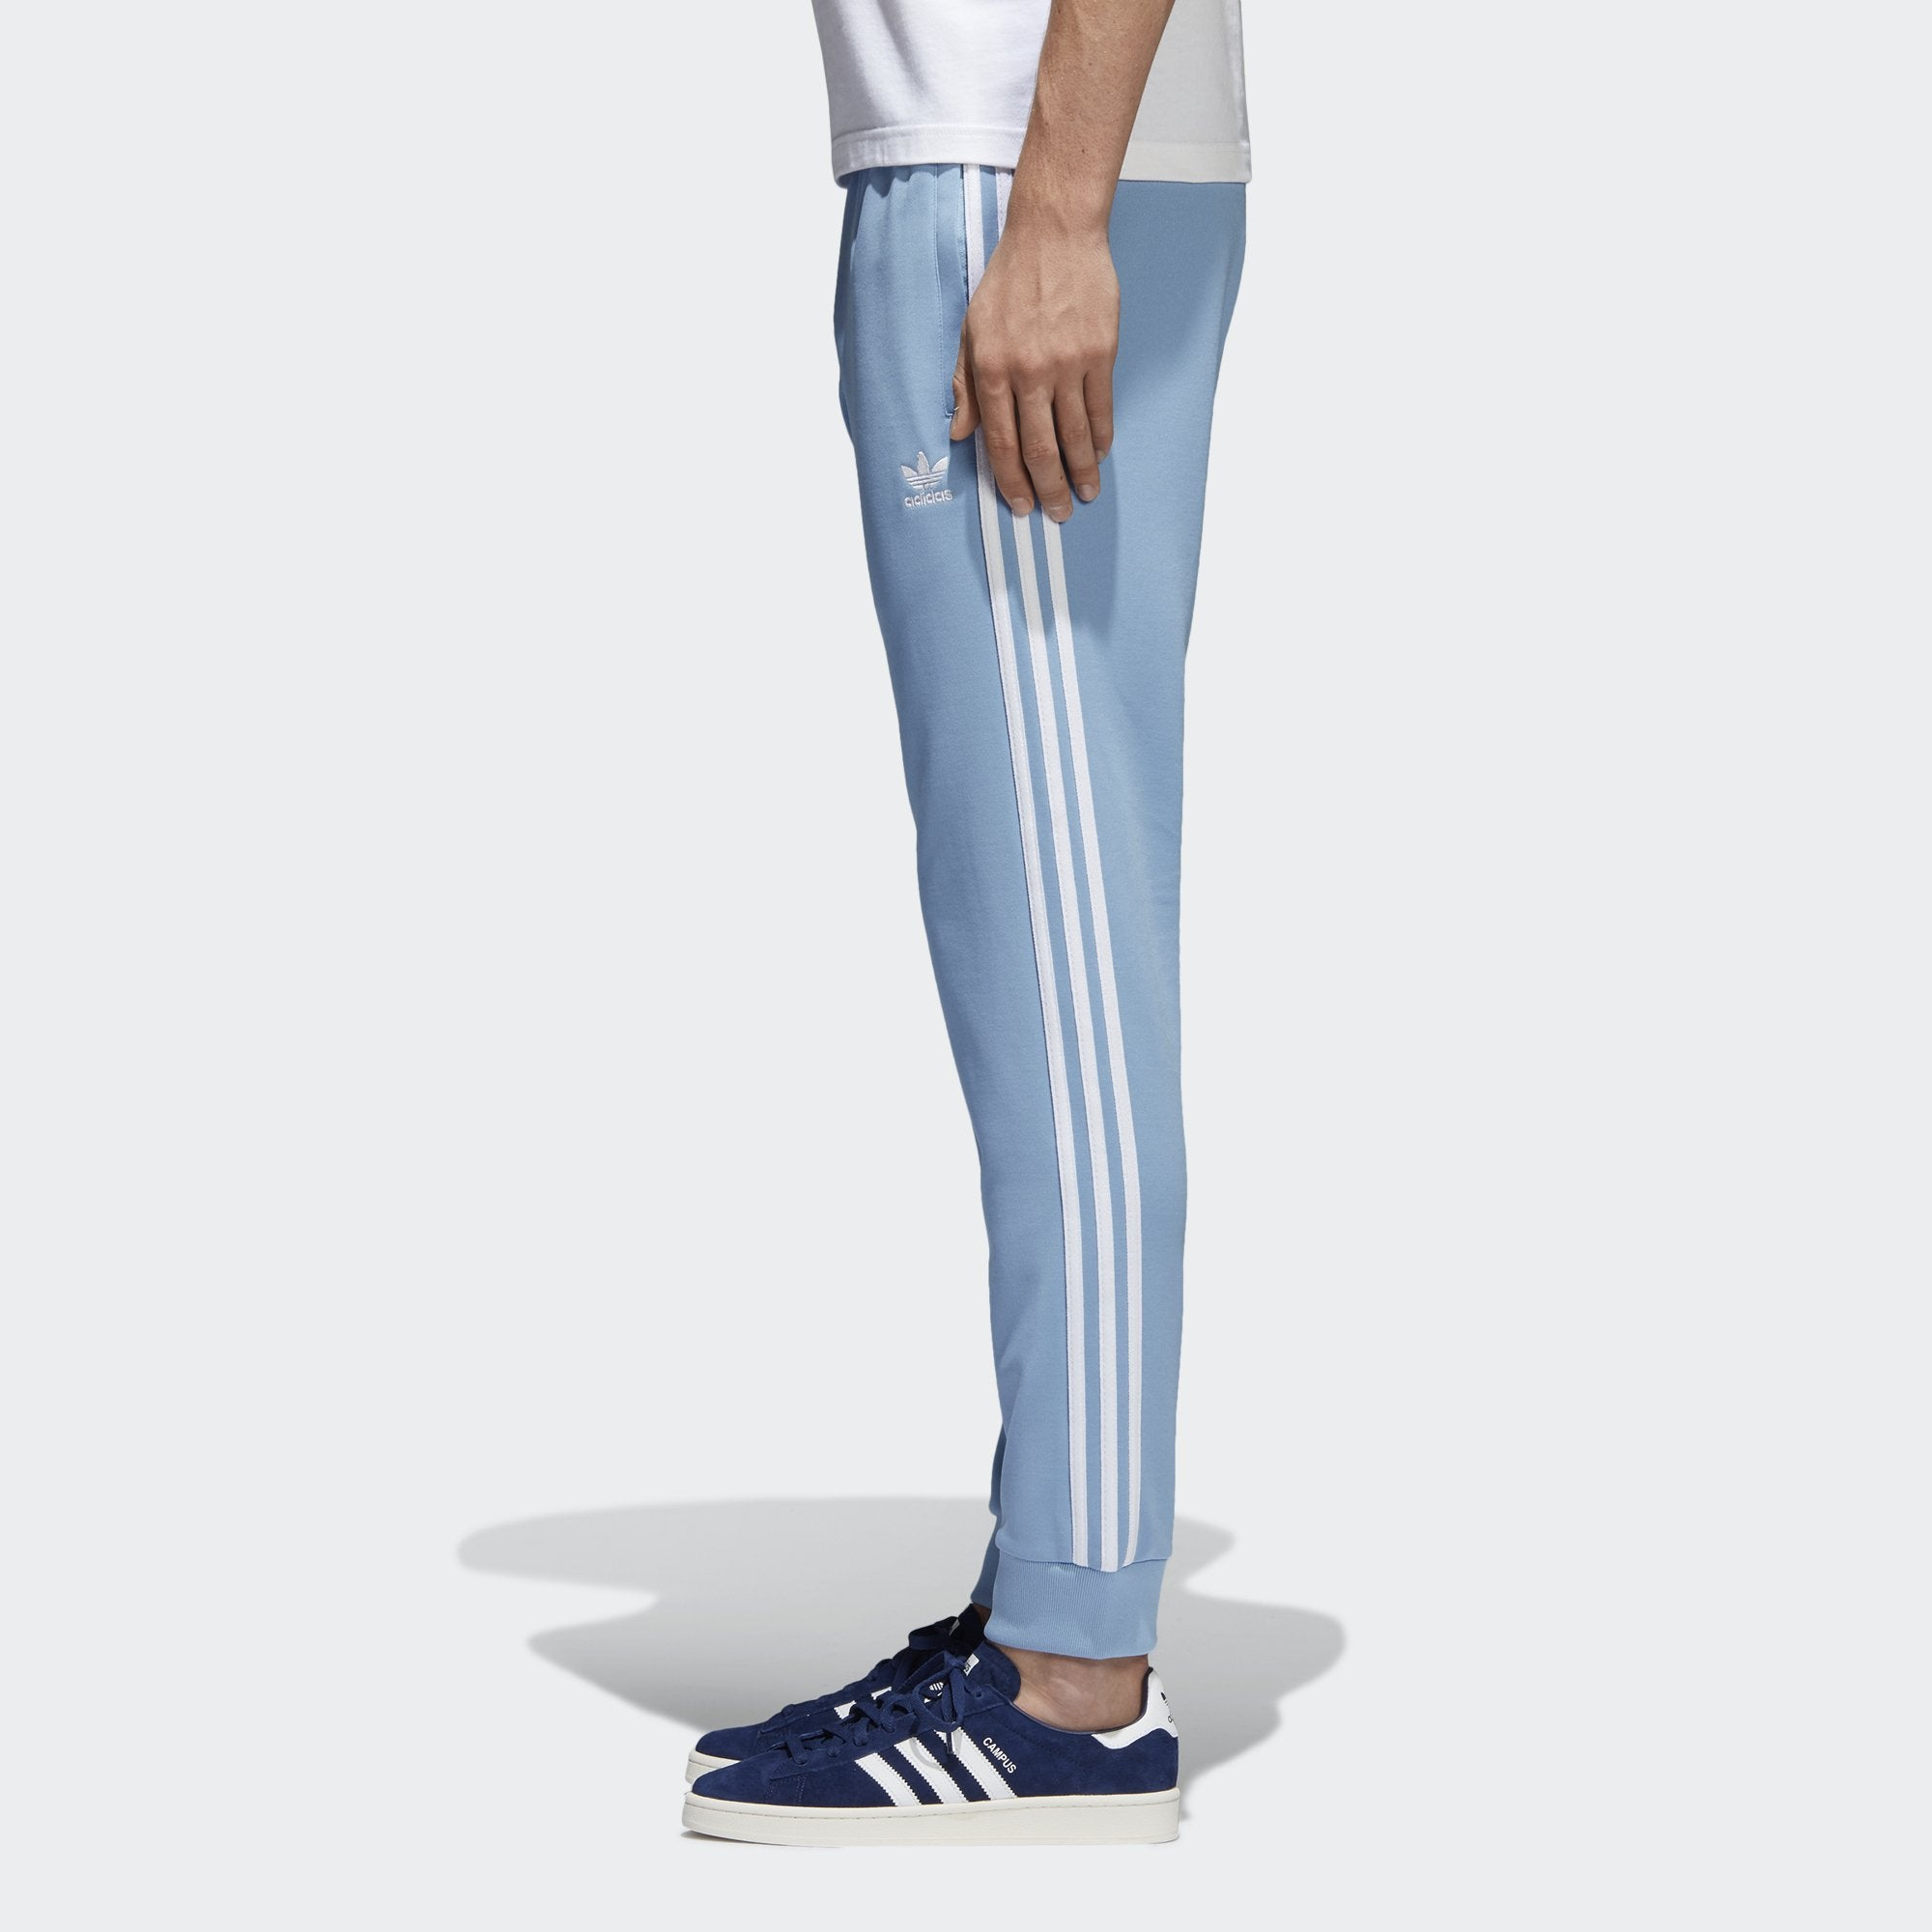 bd3f928be4a0 Men s adidas Originals SST Track Pants Ash Blue. 1